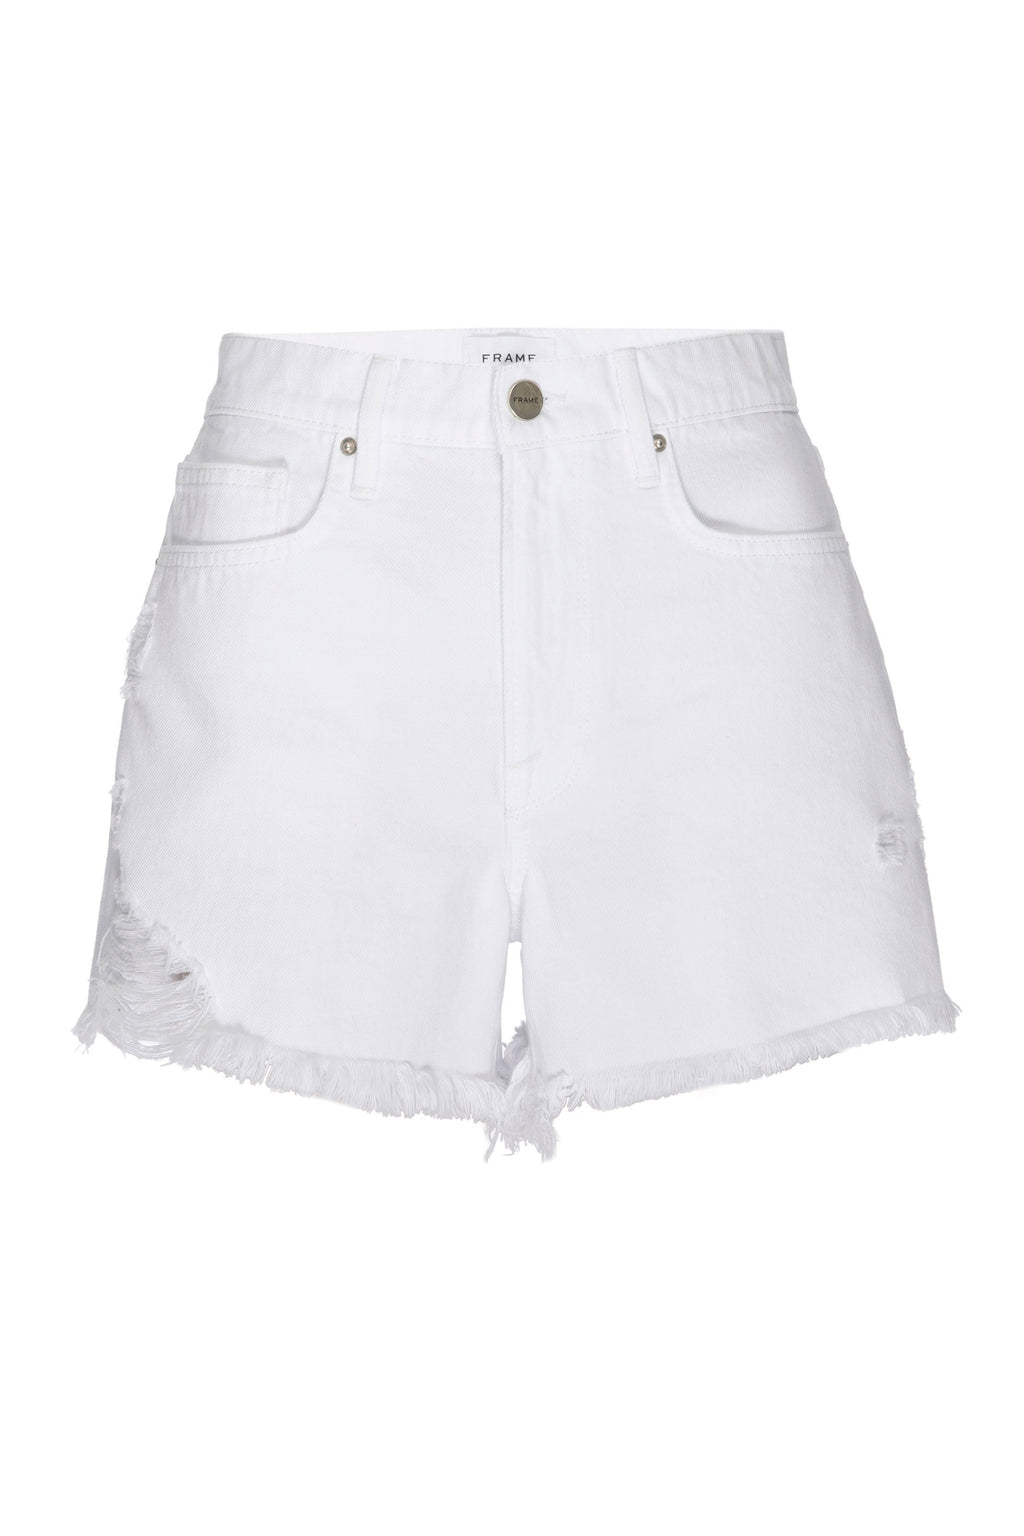 FRAME | Le Brigette Short Raw Edge- Blanc Soho